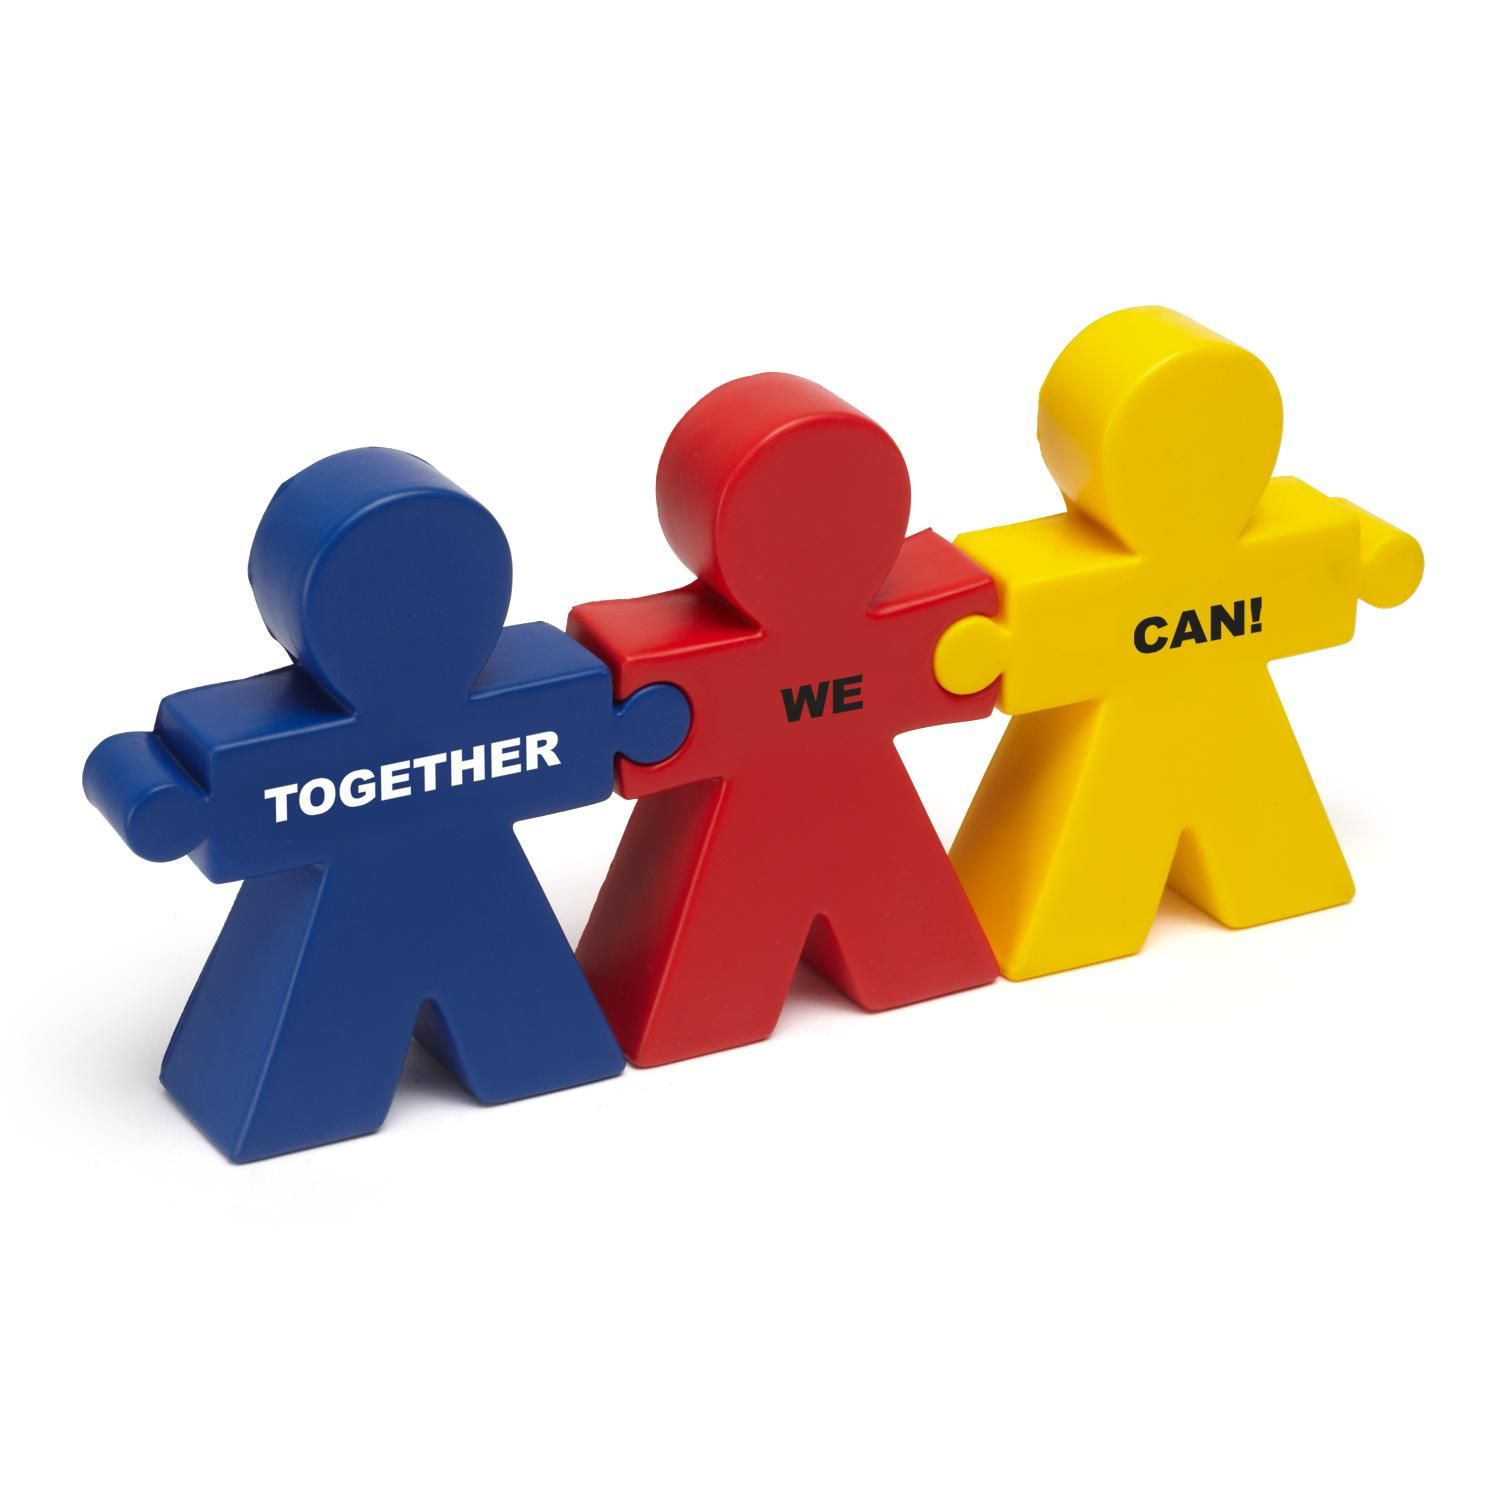 Teamwork Trio Stress Reliever. Promote teamwork and show your appreciation this Employee Appreciation Day with our Together We Can stress reliever. Add your company's logo to customize your gift.